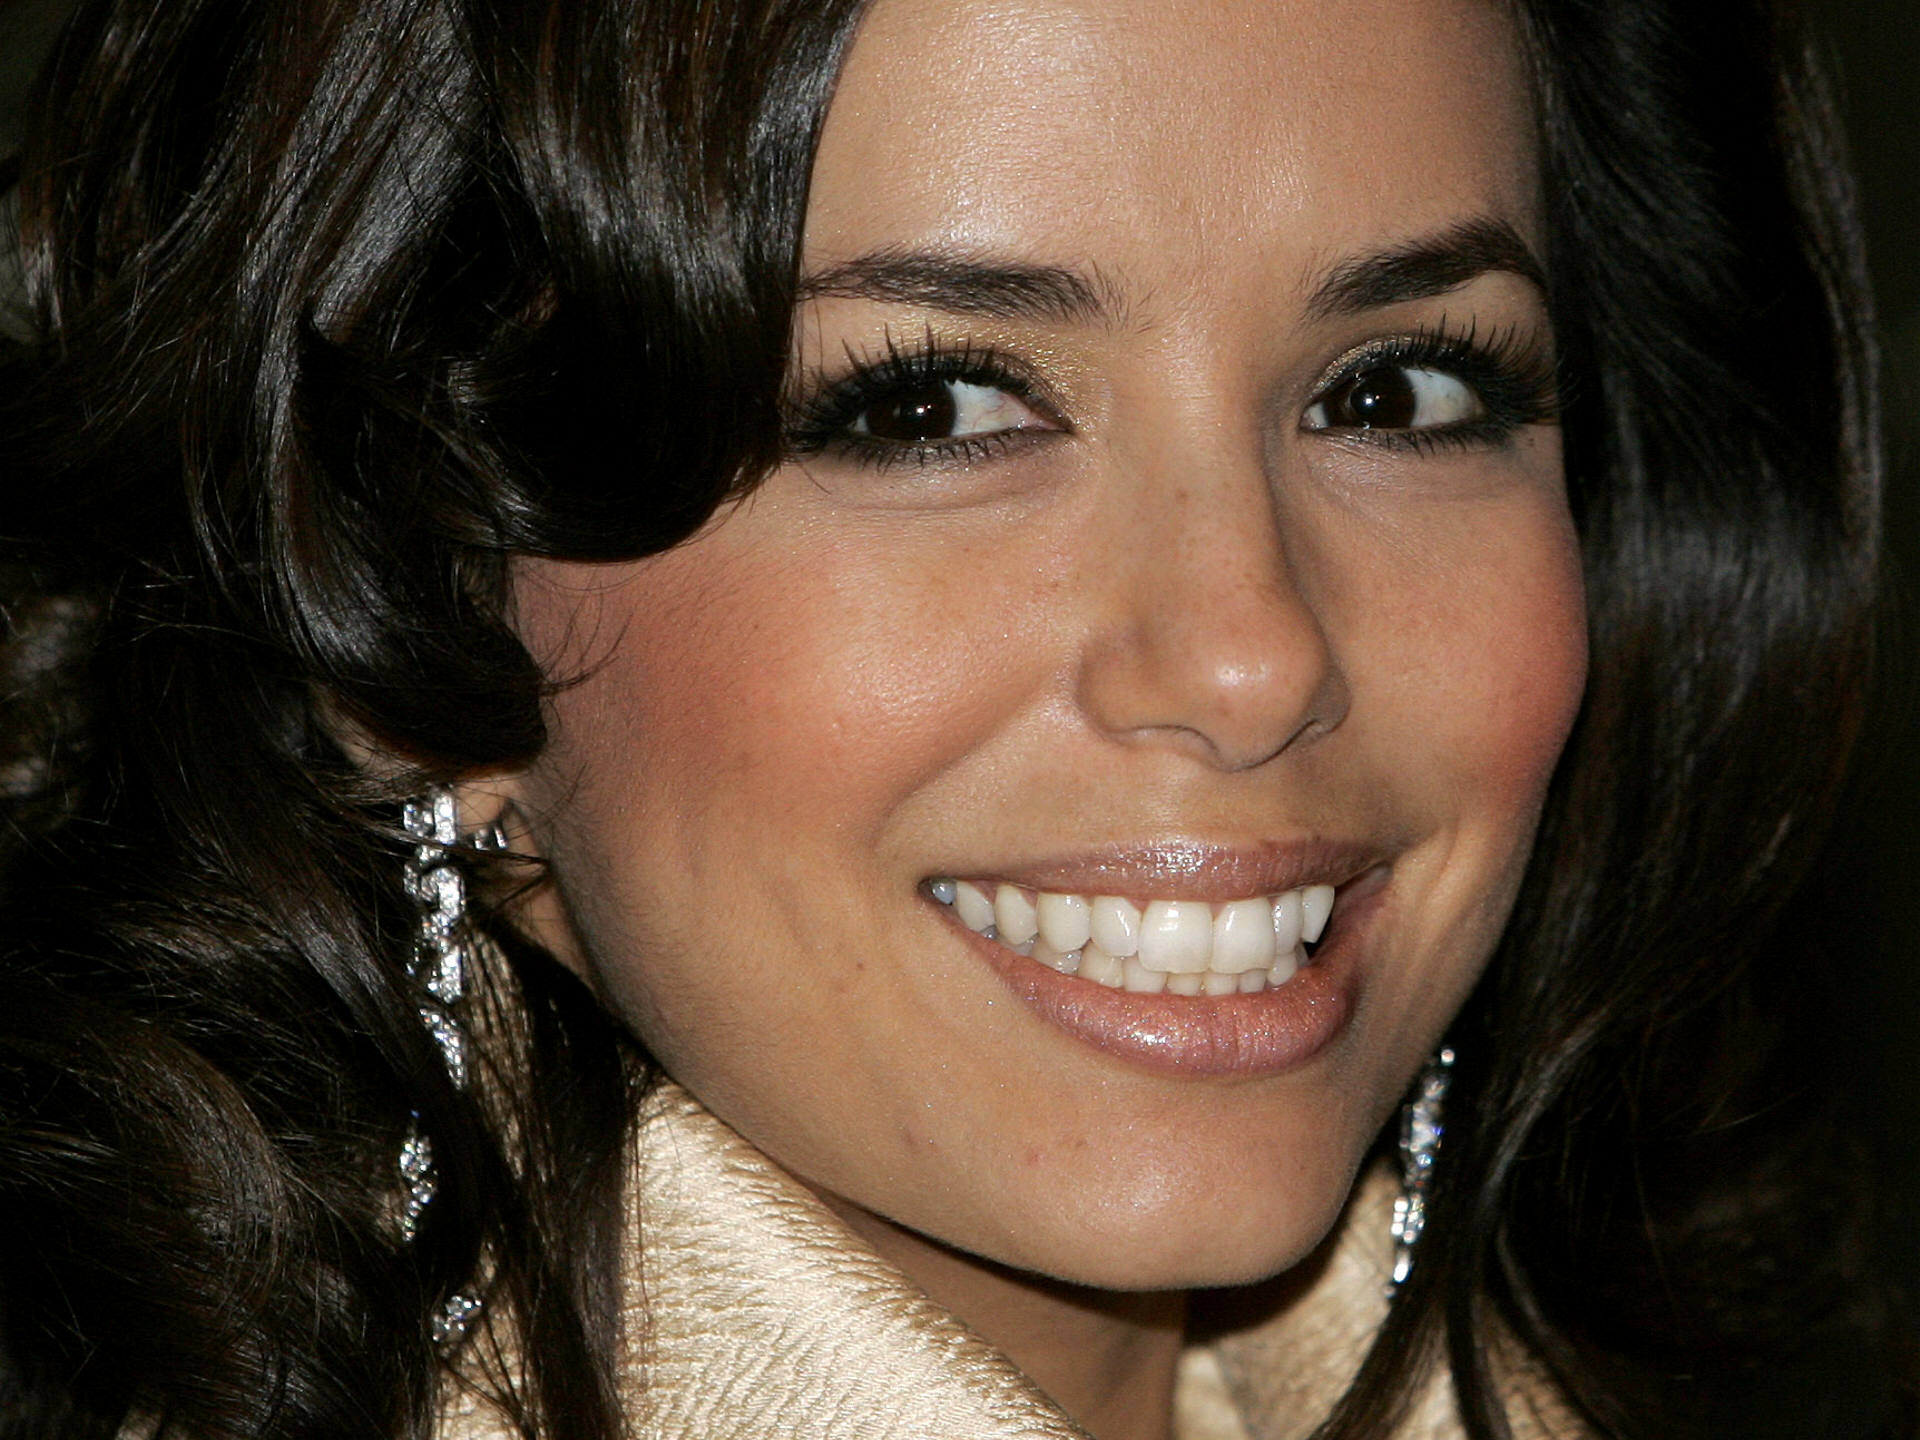 beautiful eva longoria wonderful romantic smile face look free mobile desktop background hd wallpaper